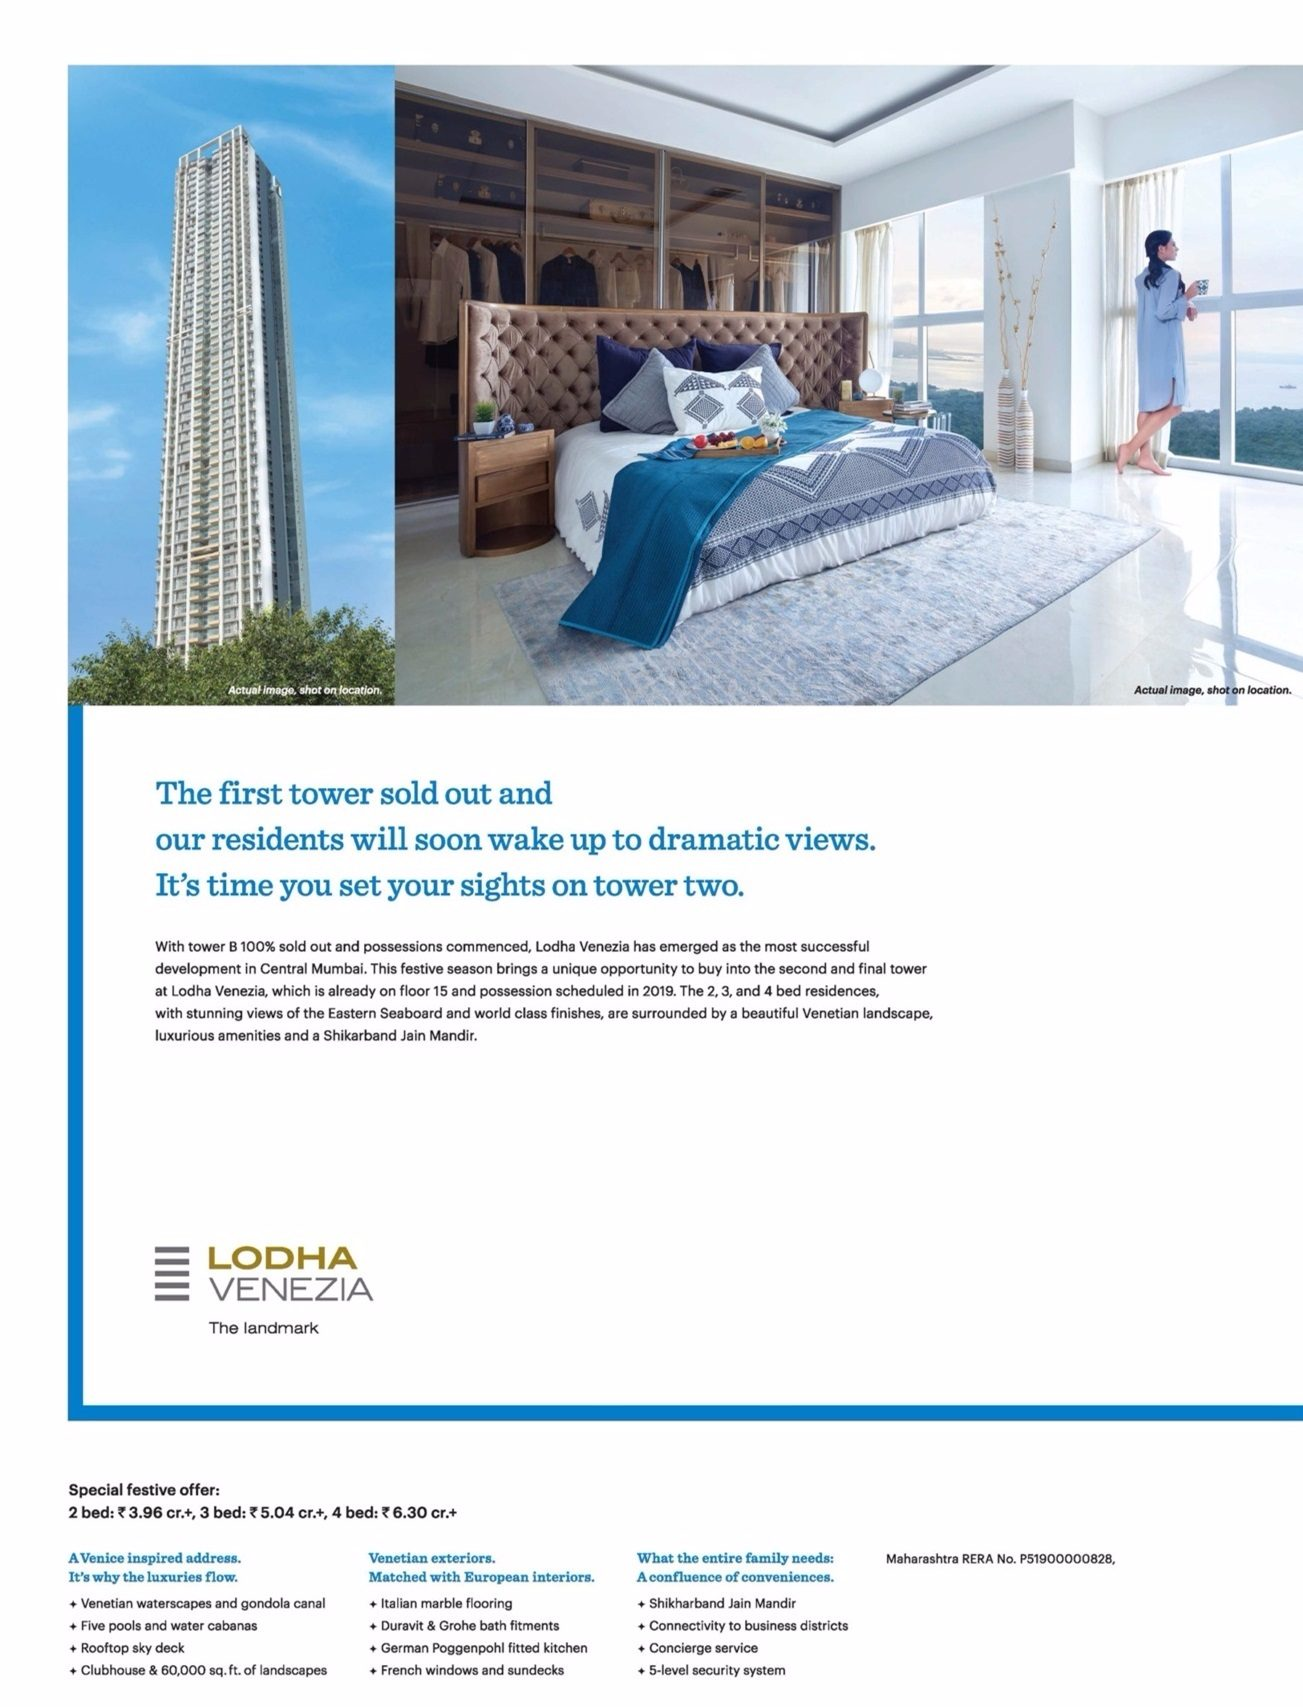 Special festive offer with 2 bed Rs 3 96 cr 3 bed Rs 5 04 cr 4 bed Rs 6 30 cr at Lodha Venezia in Mumbai